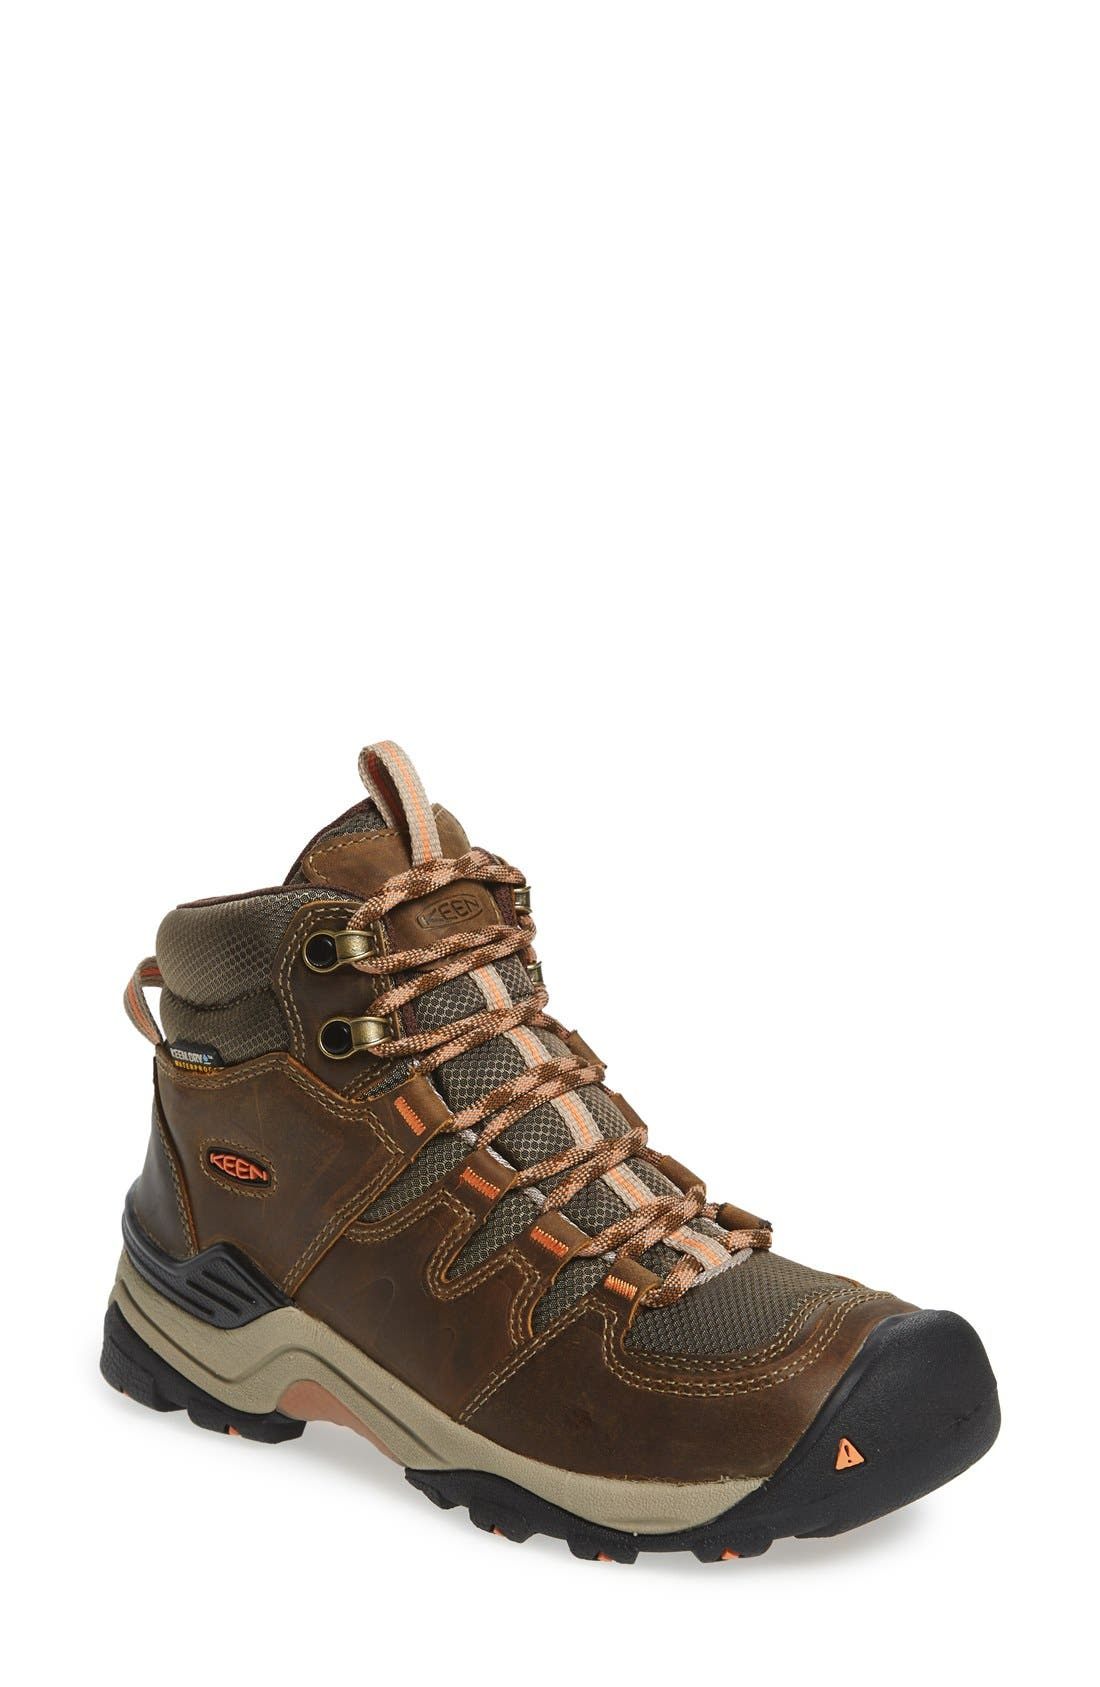 Gypsum II Mid Waterproof Hiking Boot,                         Main,                         color, Cornstock/ Gold Coral